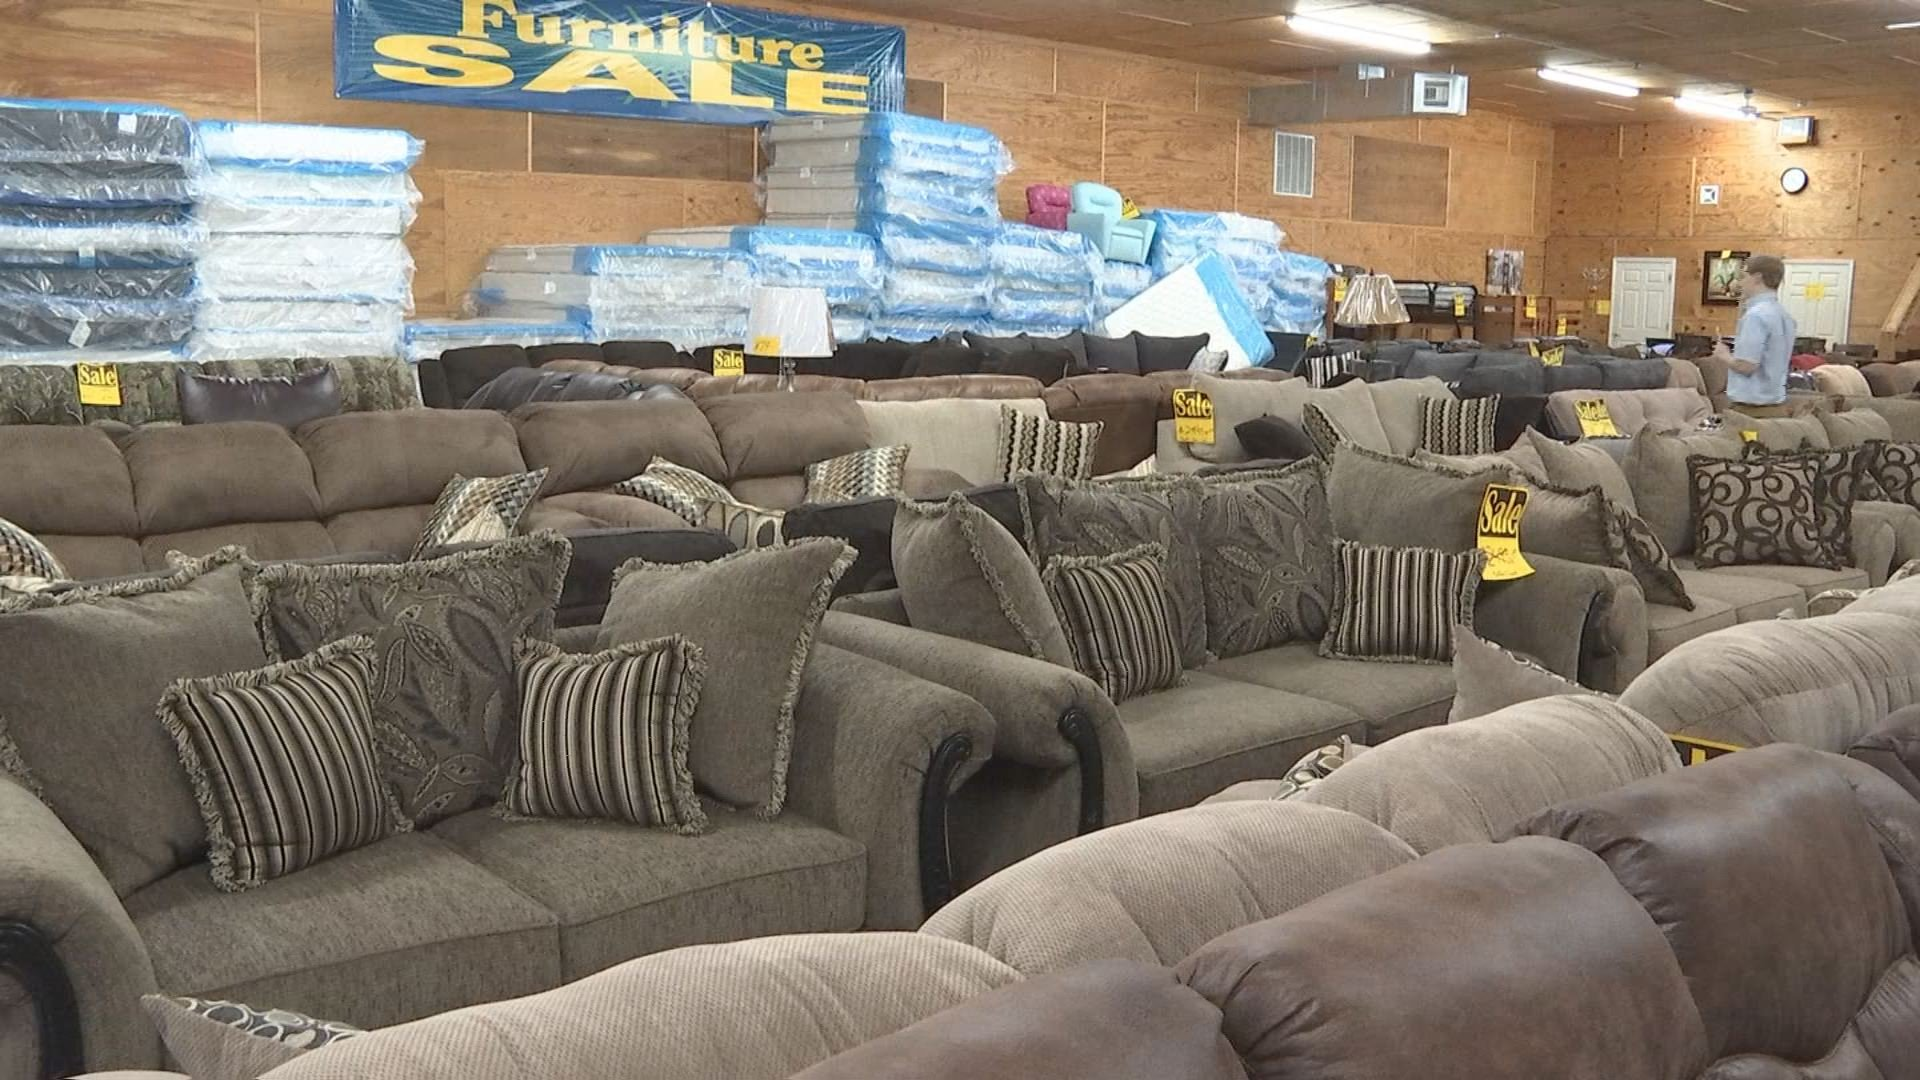 Not Enough Snow For Free Furniture At Paducah Warehouse Furnitur Wpsd Local 6 Your News